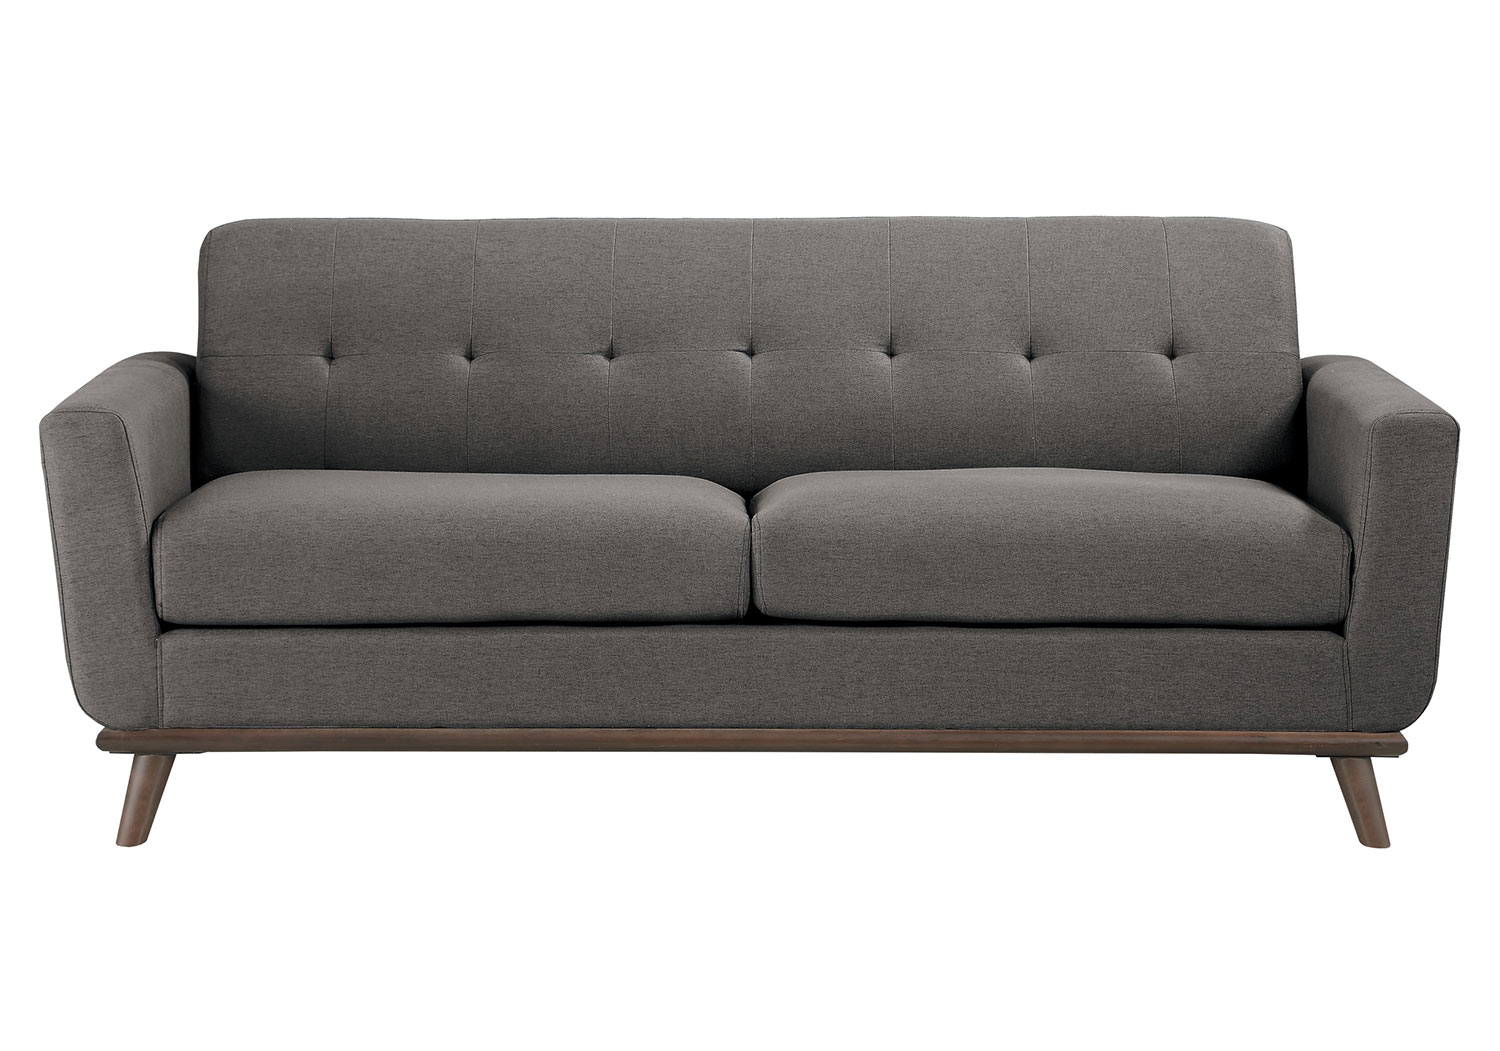 Homelegance Rittman Sofa - Gray